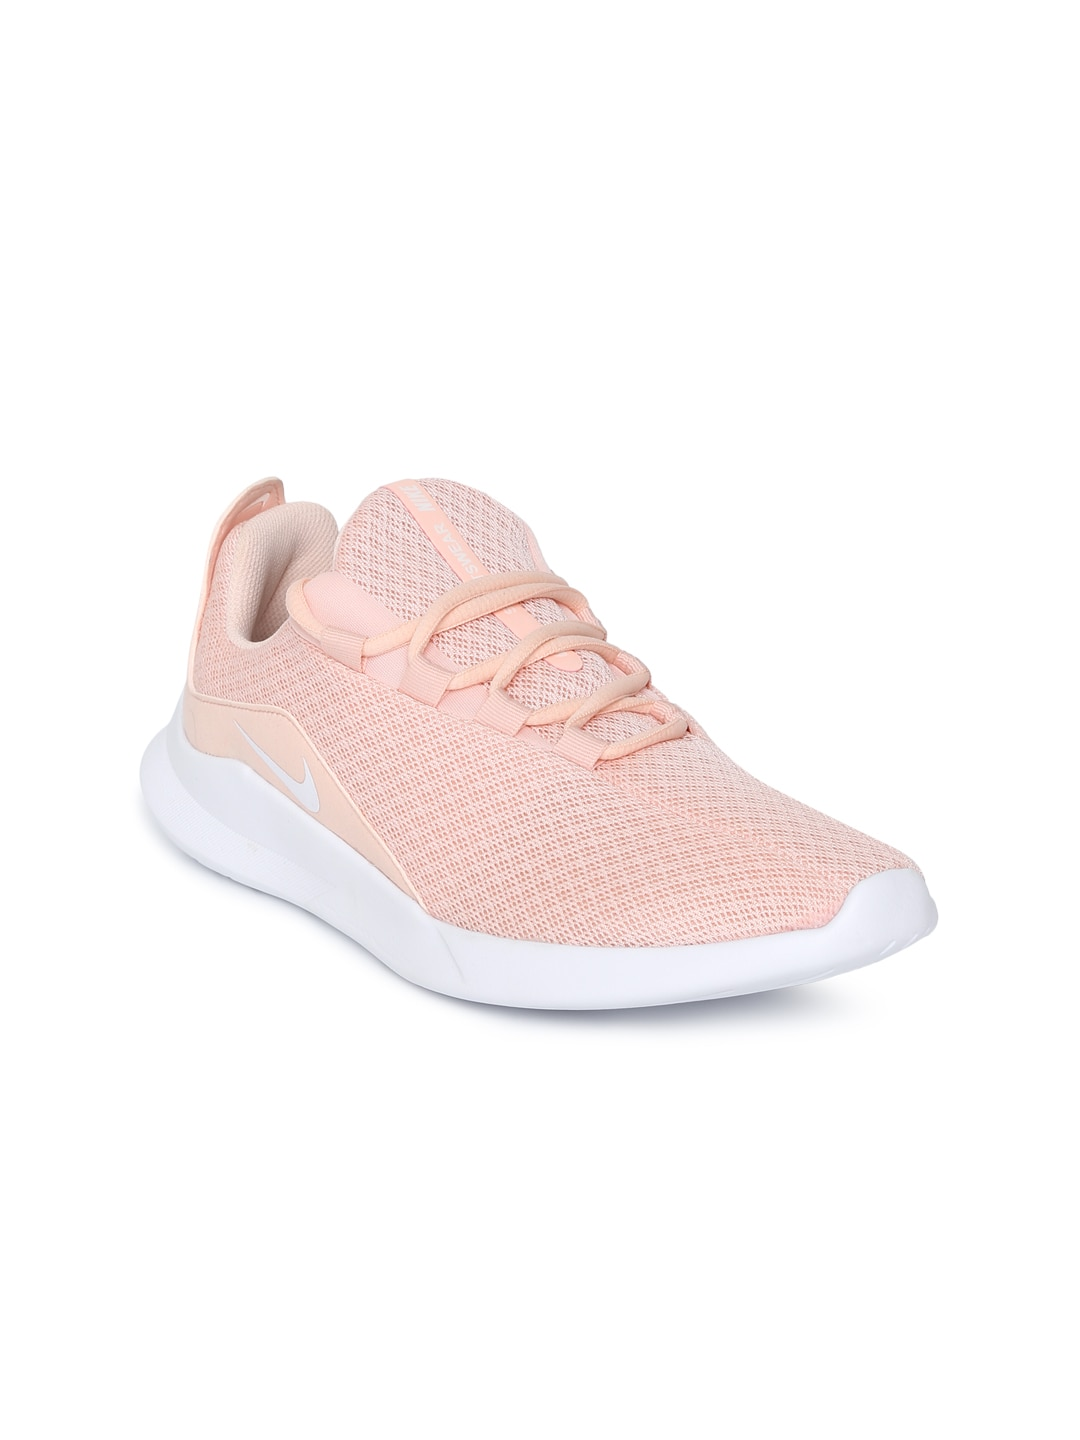 hot sales efd7a 137f5 Women s Nike Shoes - Buy Nike Shoes for Women Online in India